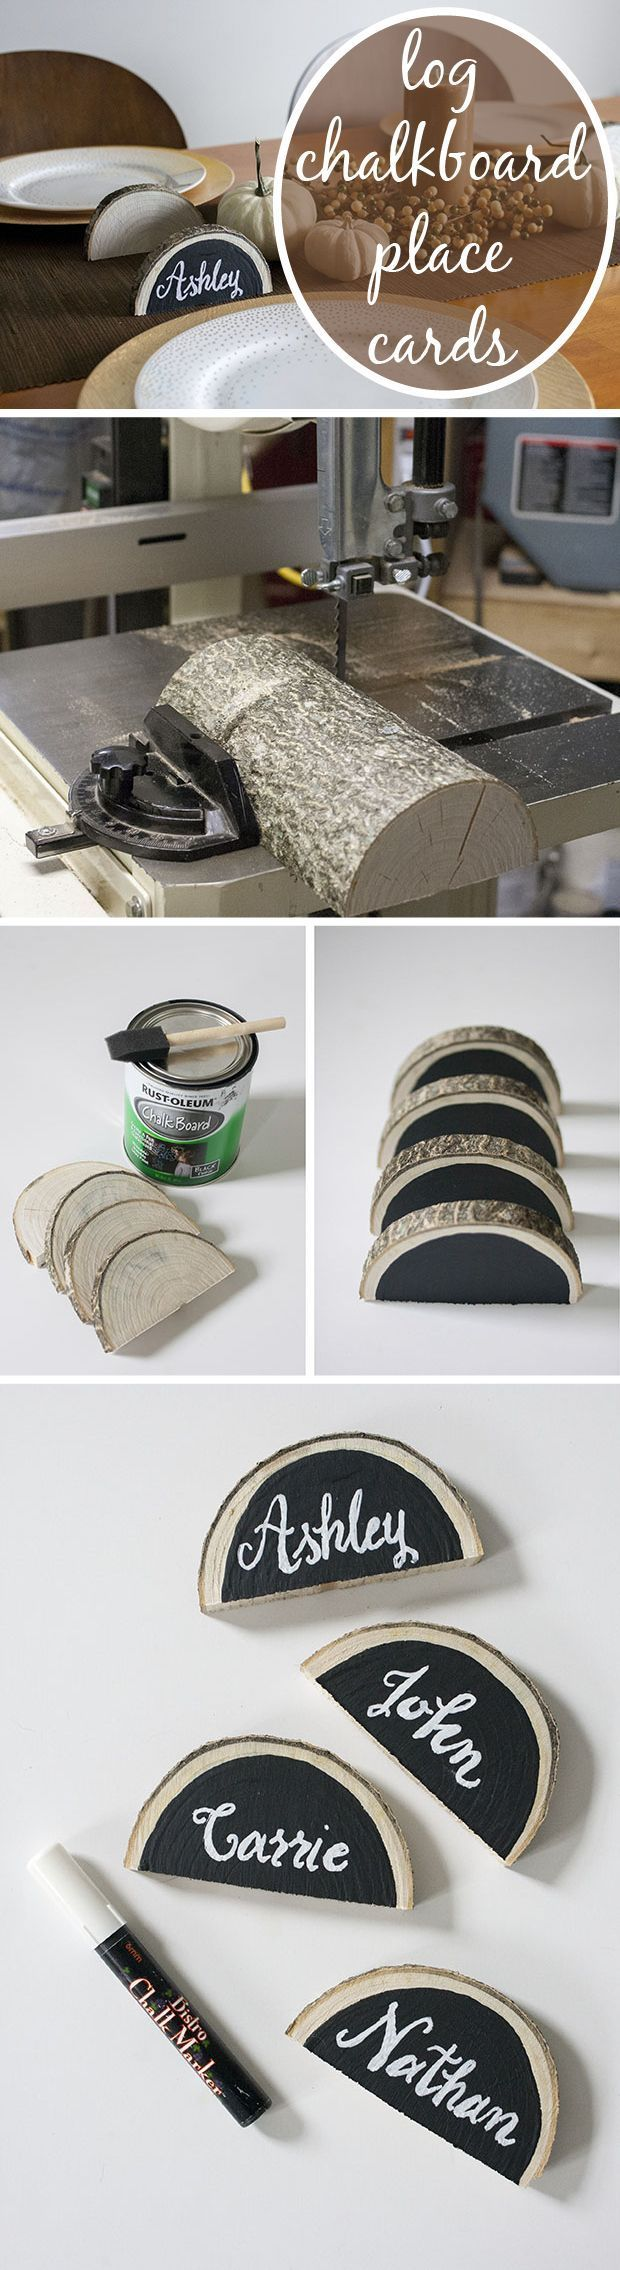 Create Rustic Place Cards Using Log Slices and Chalkboard Paint